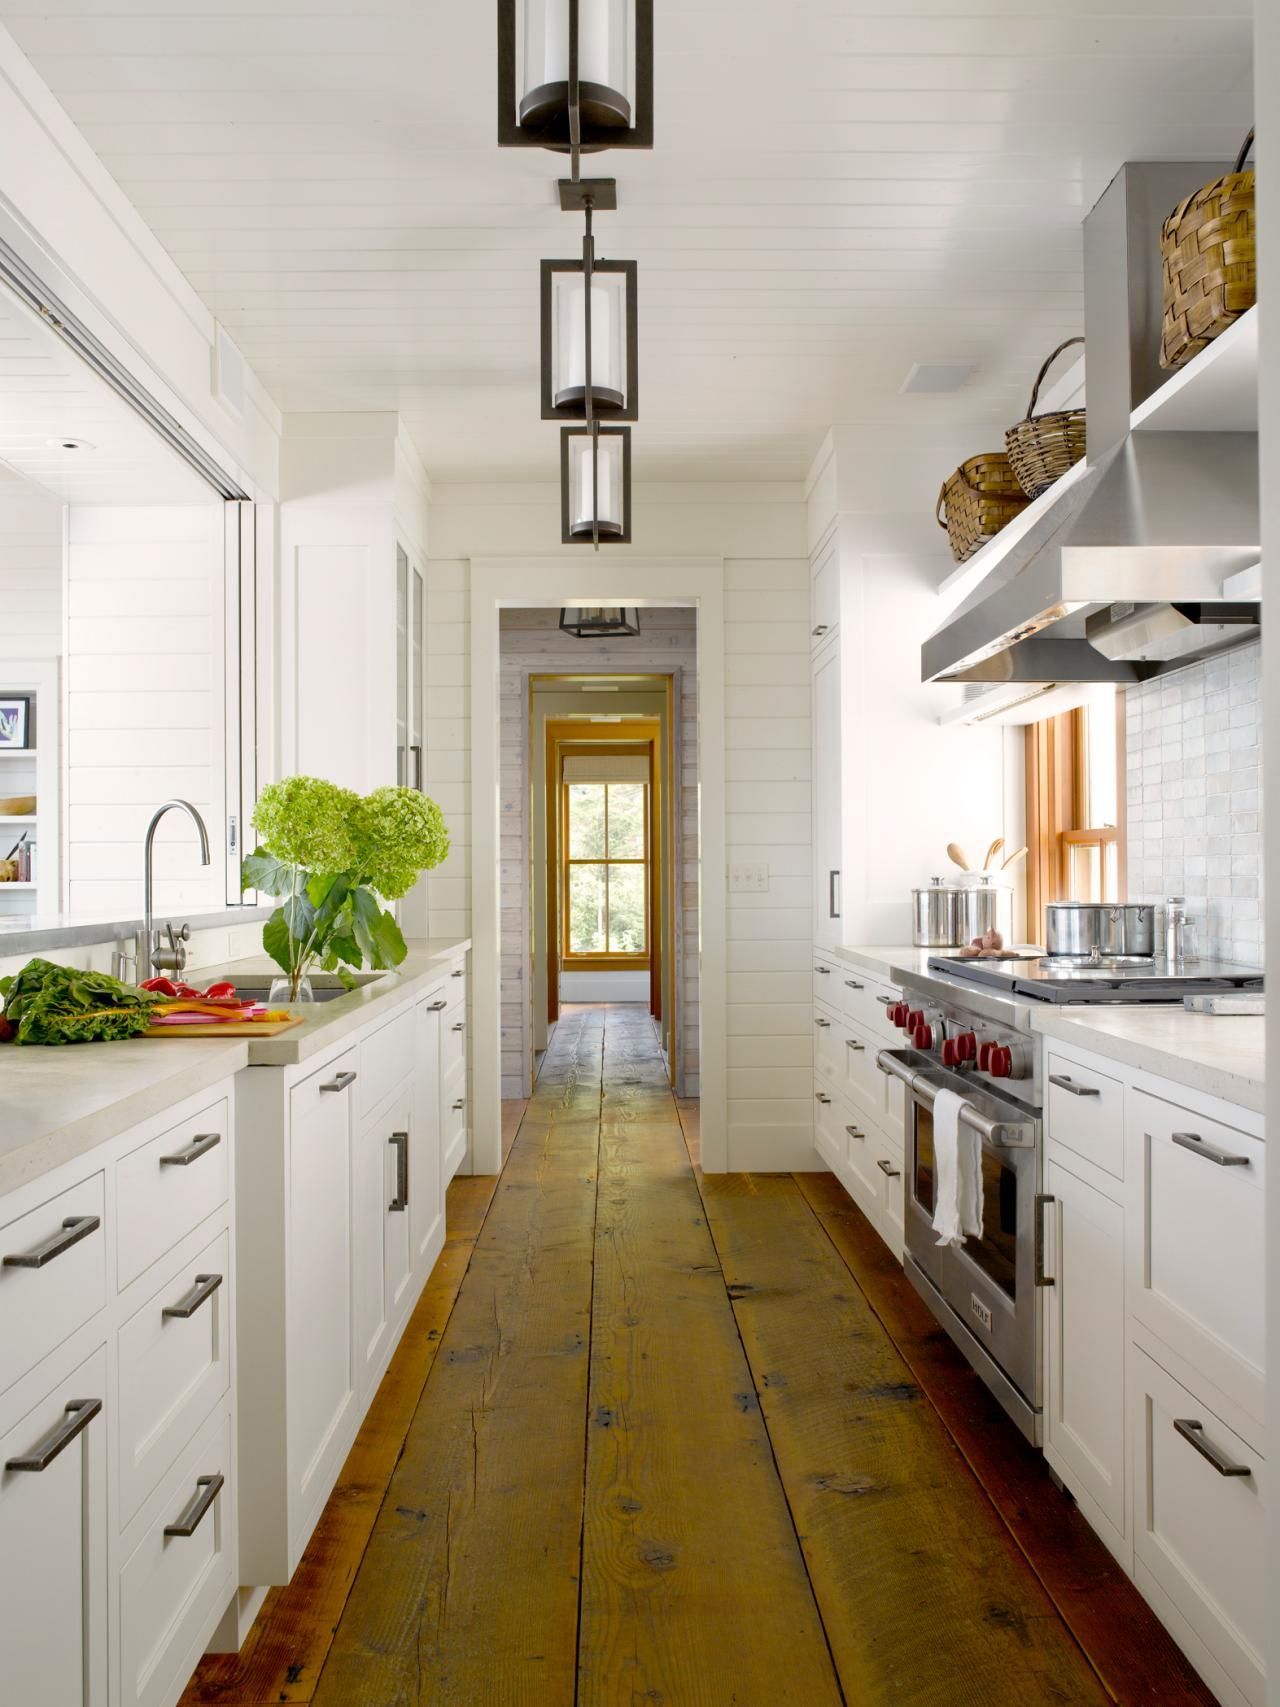 Pin By Sonia Mcclain On Kitchens Pinterest Electrical Wiring Coffee Maker Diagram Galley Kitchen Layouts Linens Rustic Design Cottage Style Bread Boxes Wine Coolers